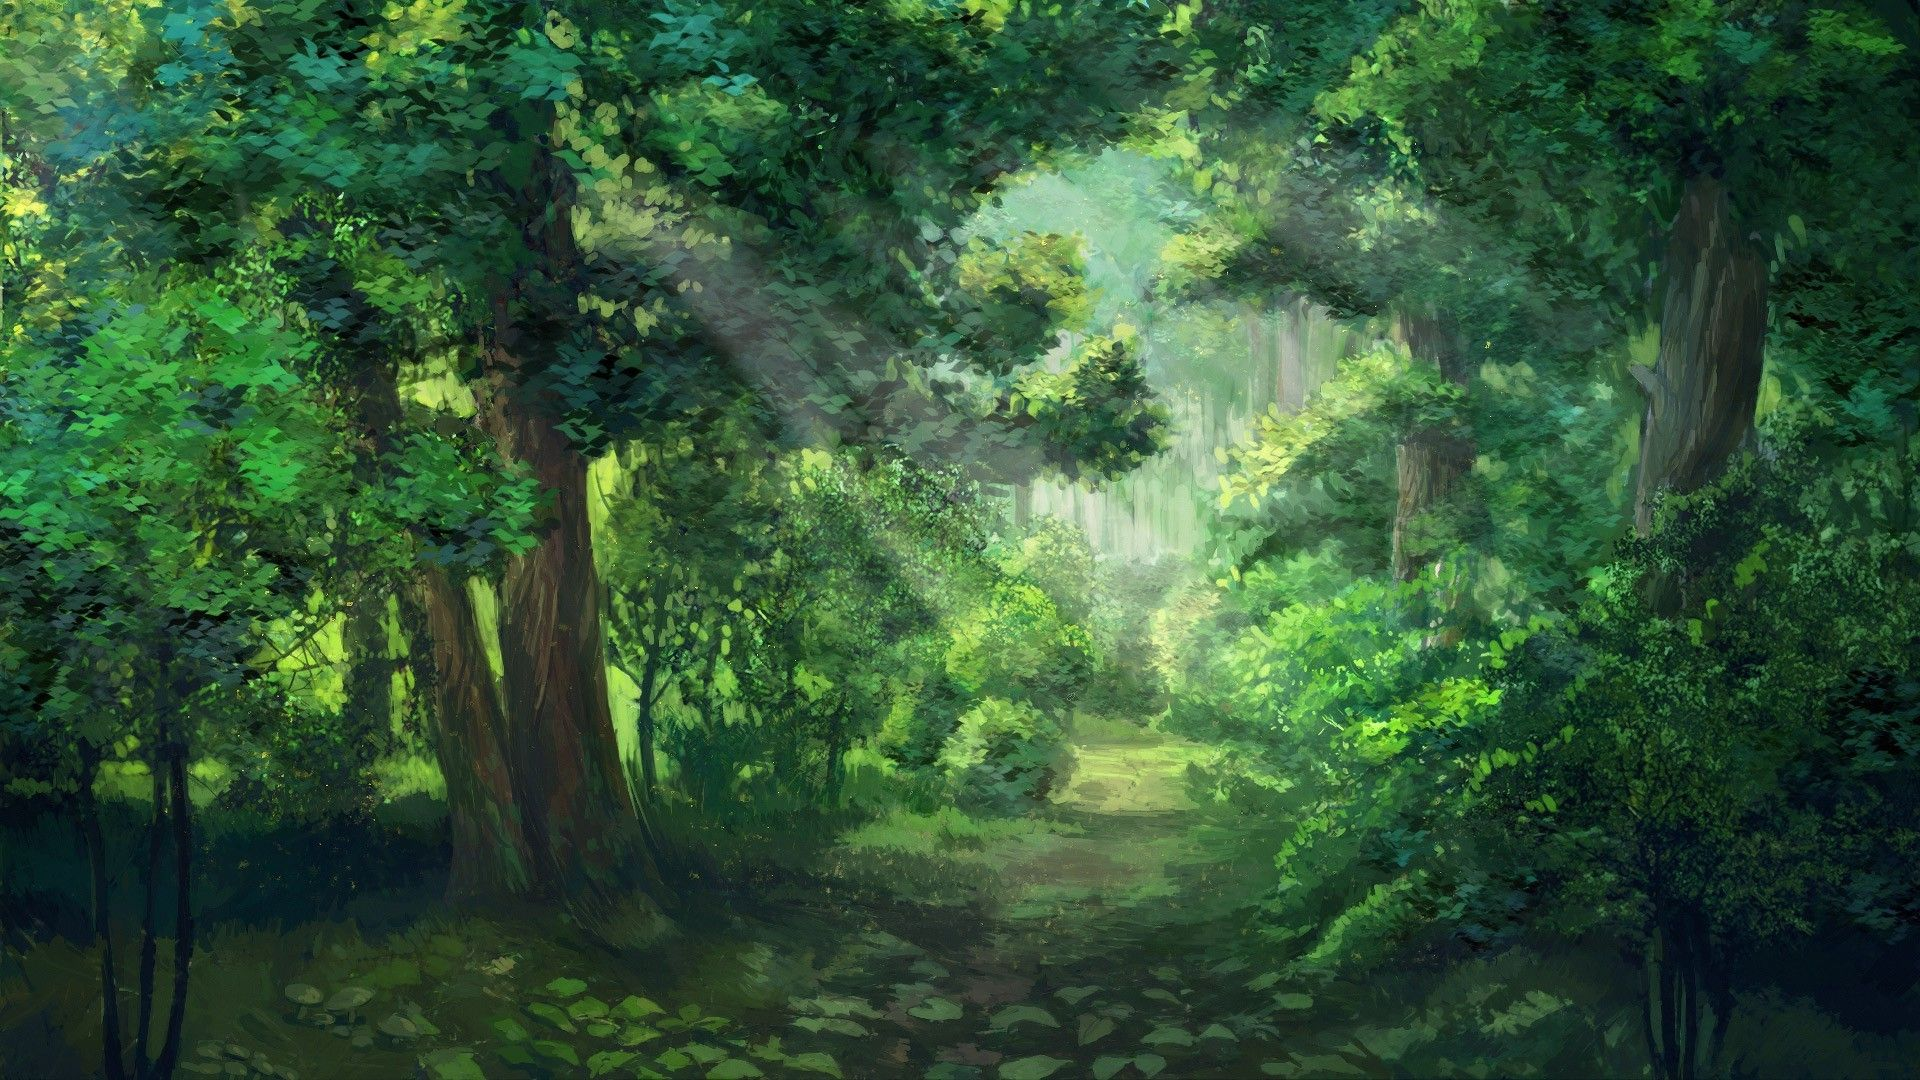 Download Hd Wallpapers Of 112380 Sunlight Forest Green Everlasting Summer Sun Rays Trees Free Download High Quali Anime Scenery Fantasy Landscape Scenery